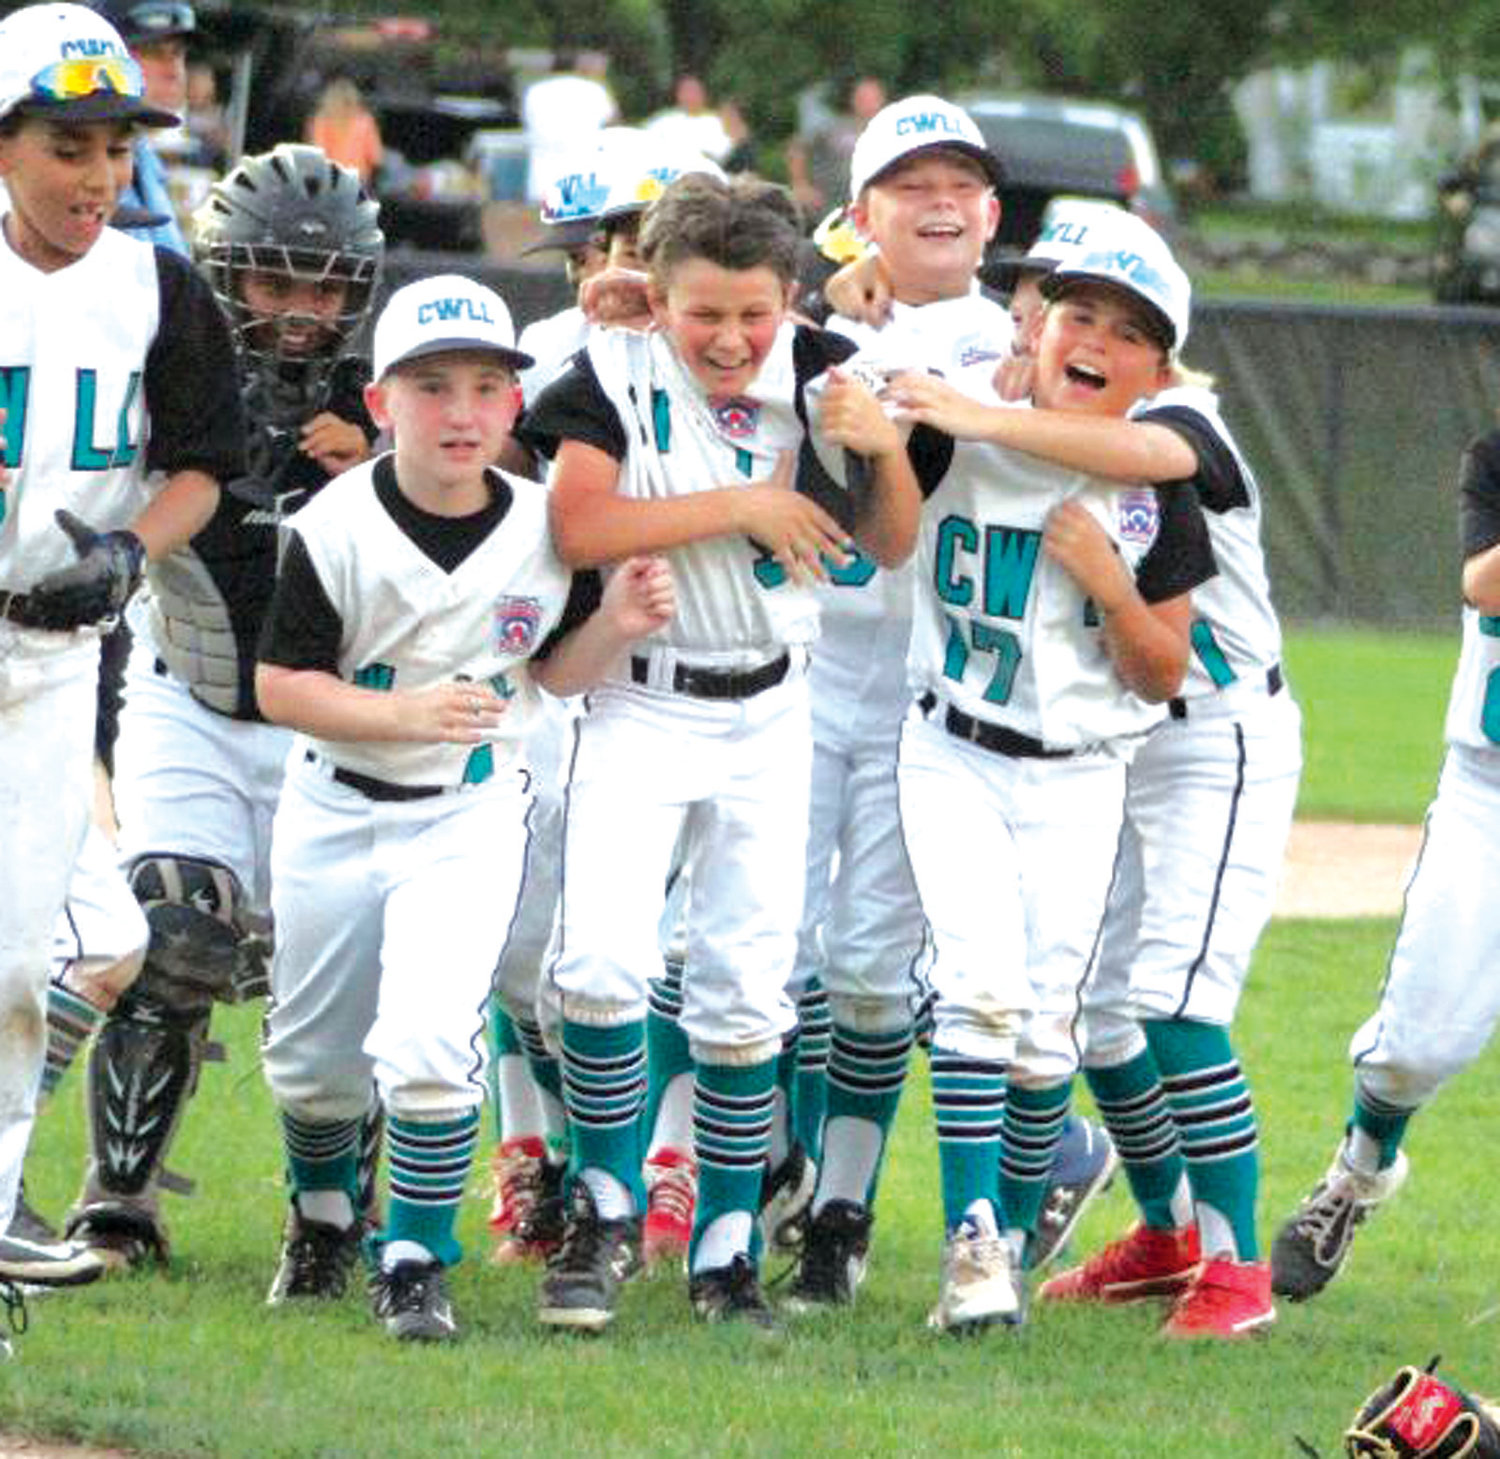 PARTY TIME: Members of the CWLL 10's rush the field after winning the state championship.